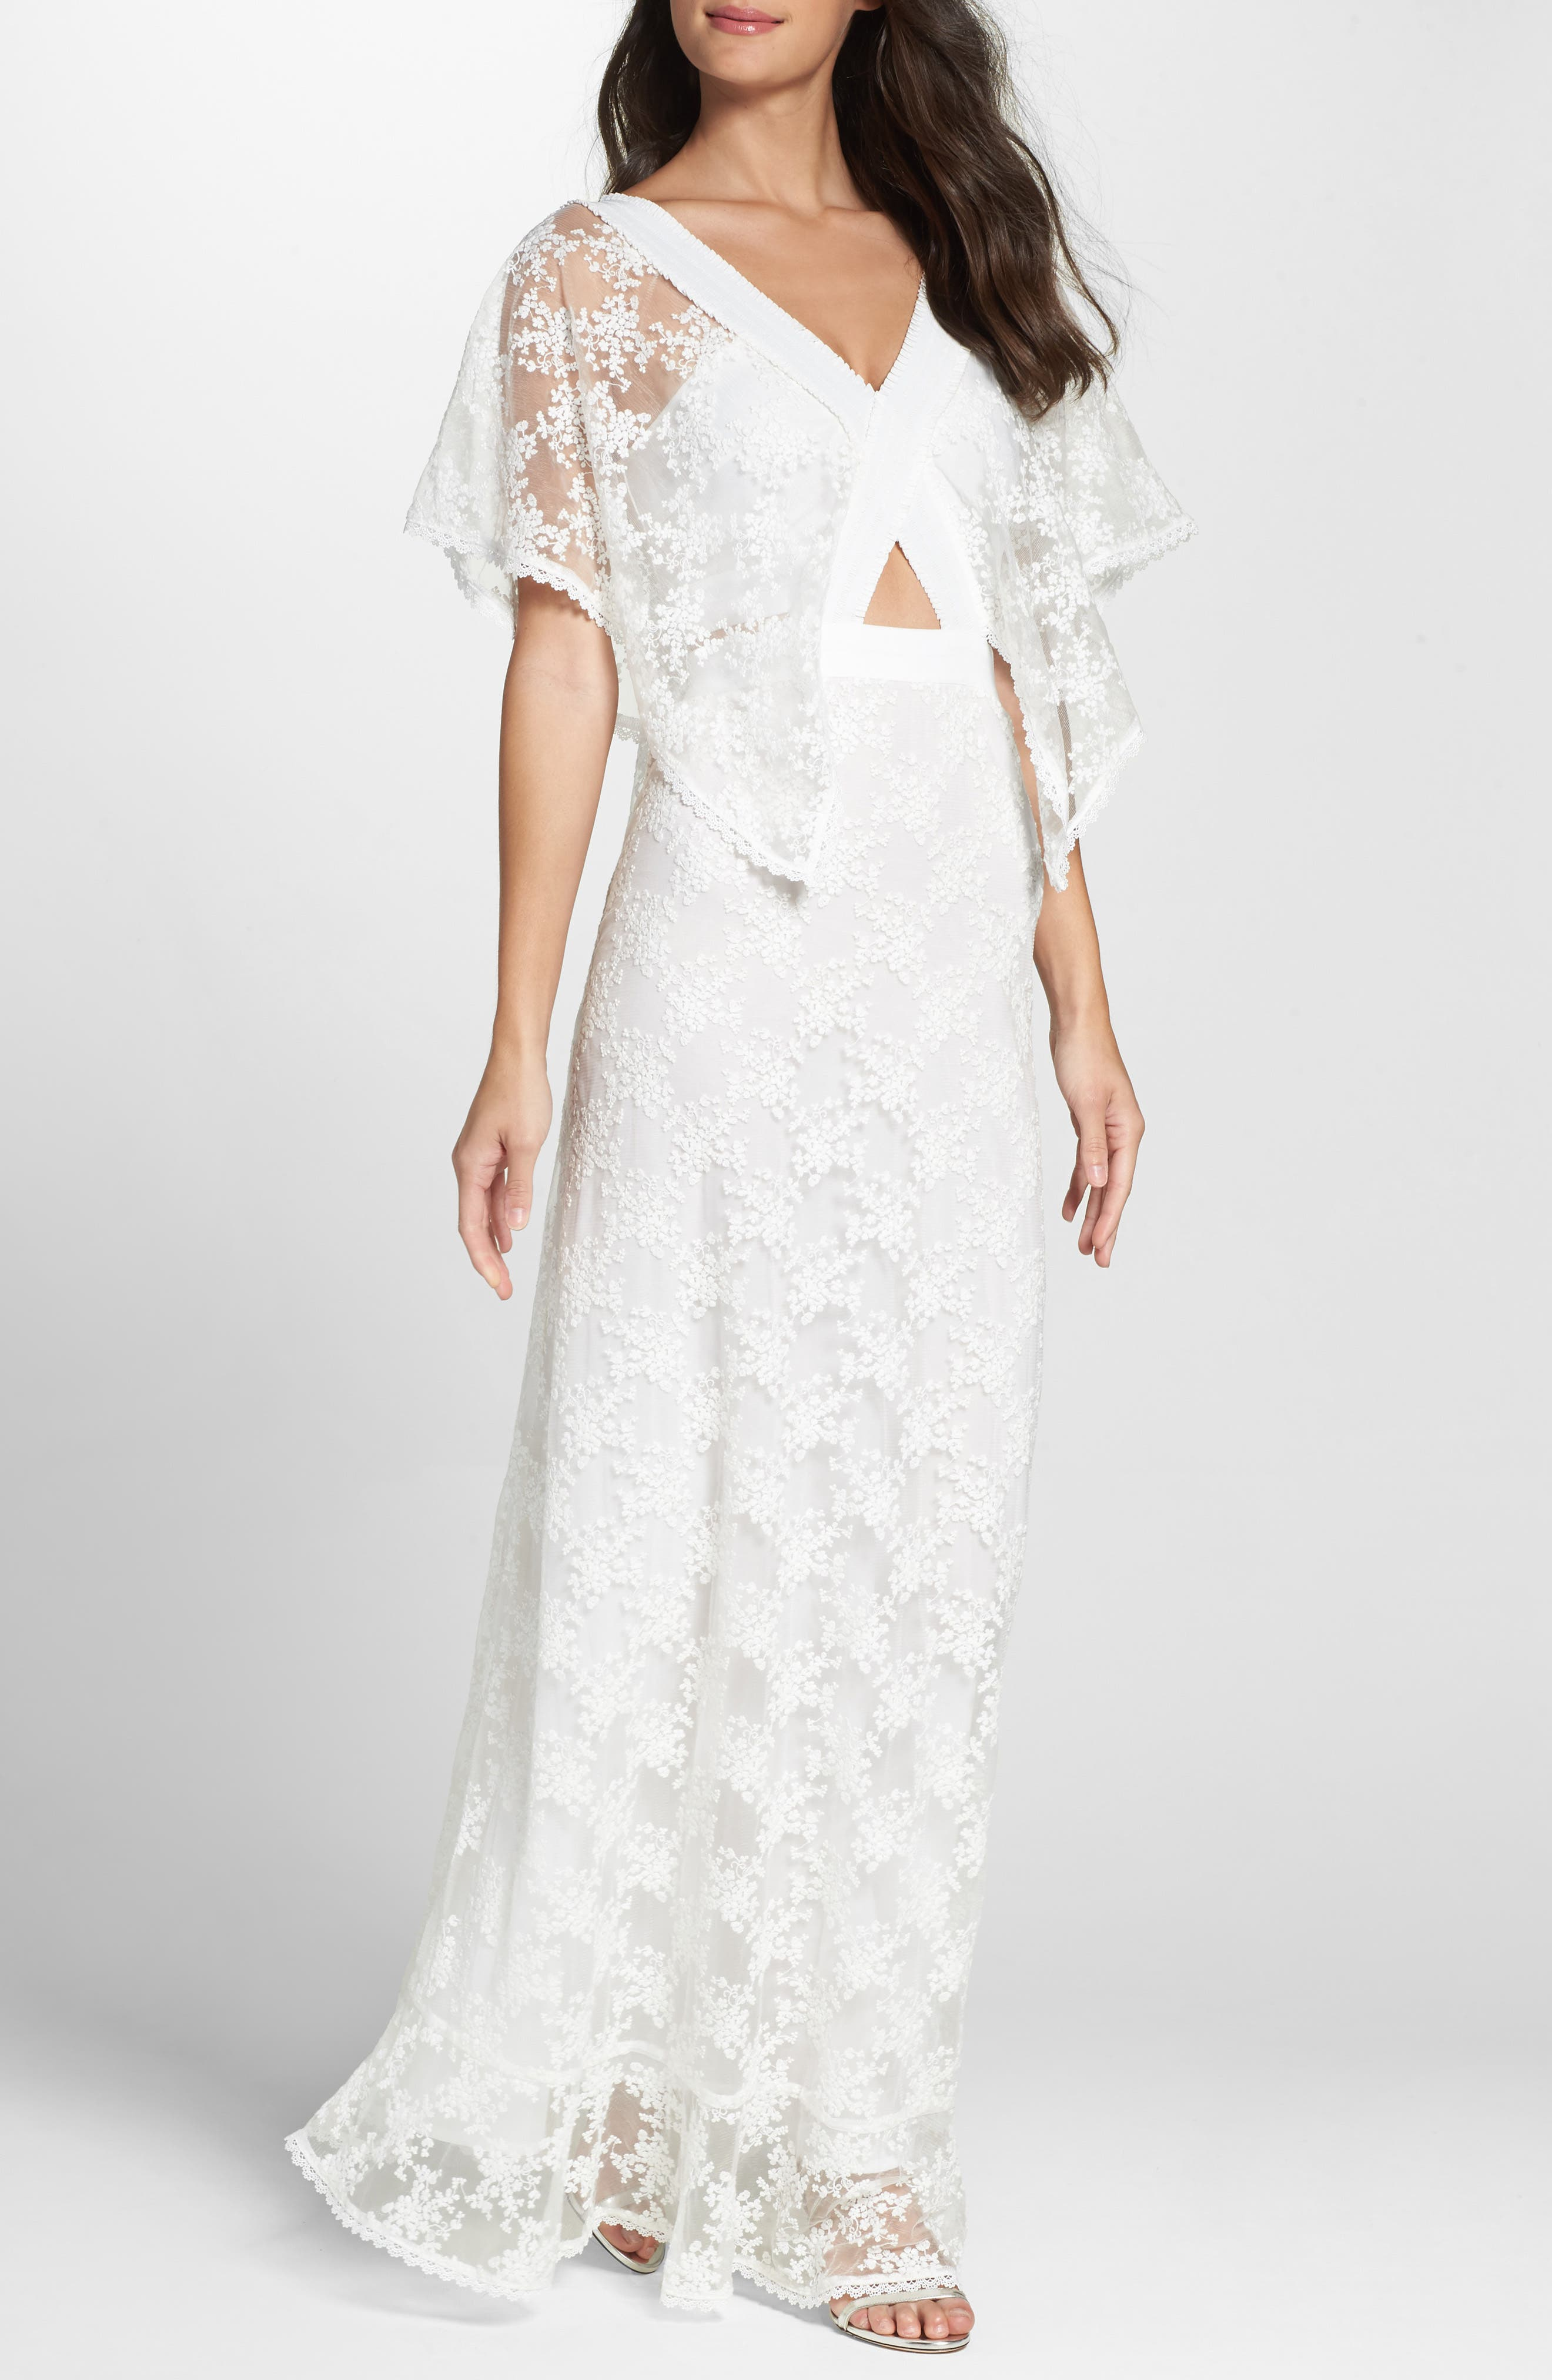 August Handkerchief Sleeve Embroidered Long Dress,                         Main,                         color, Ivory